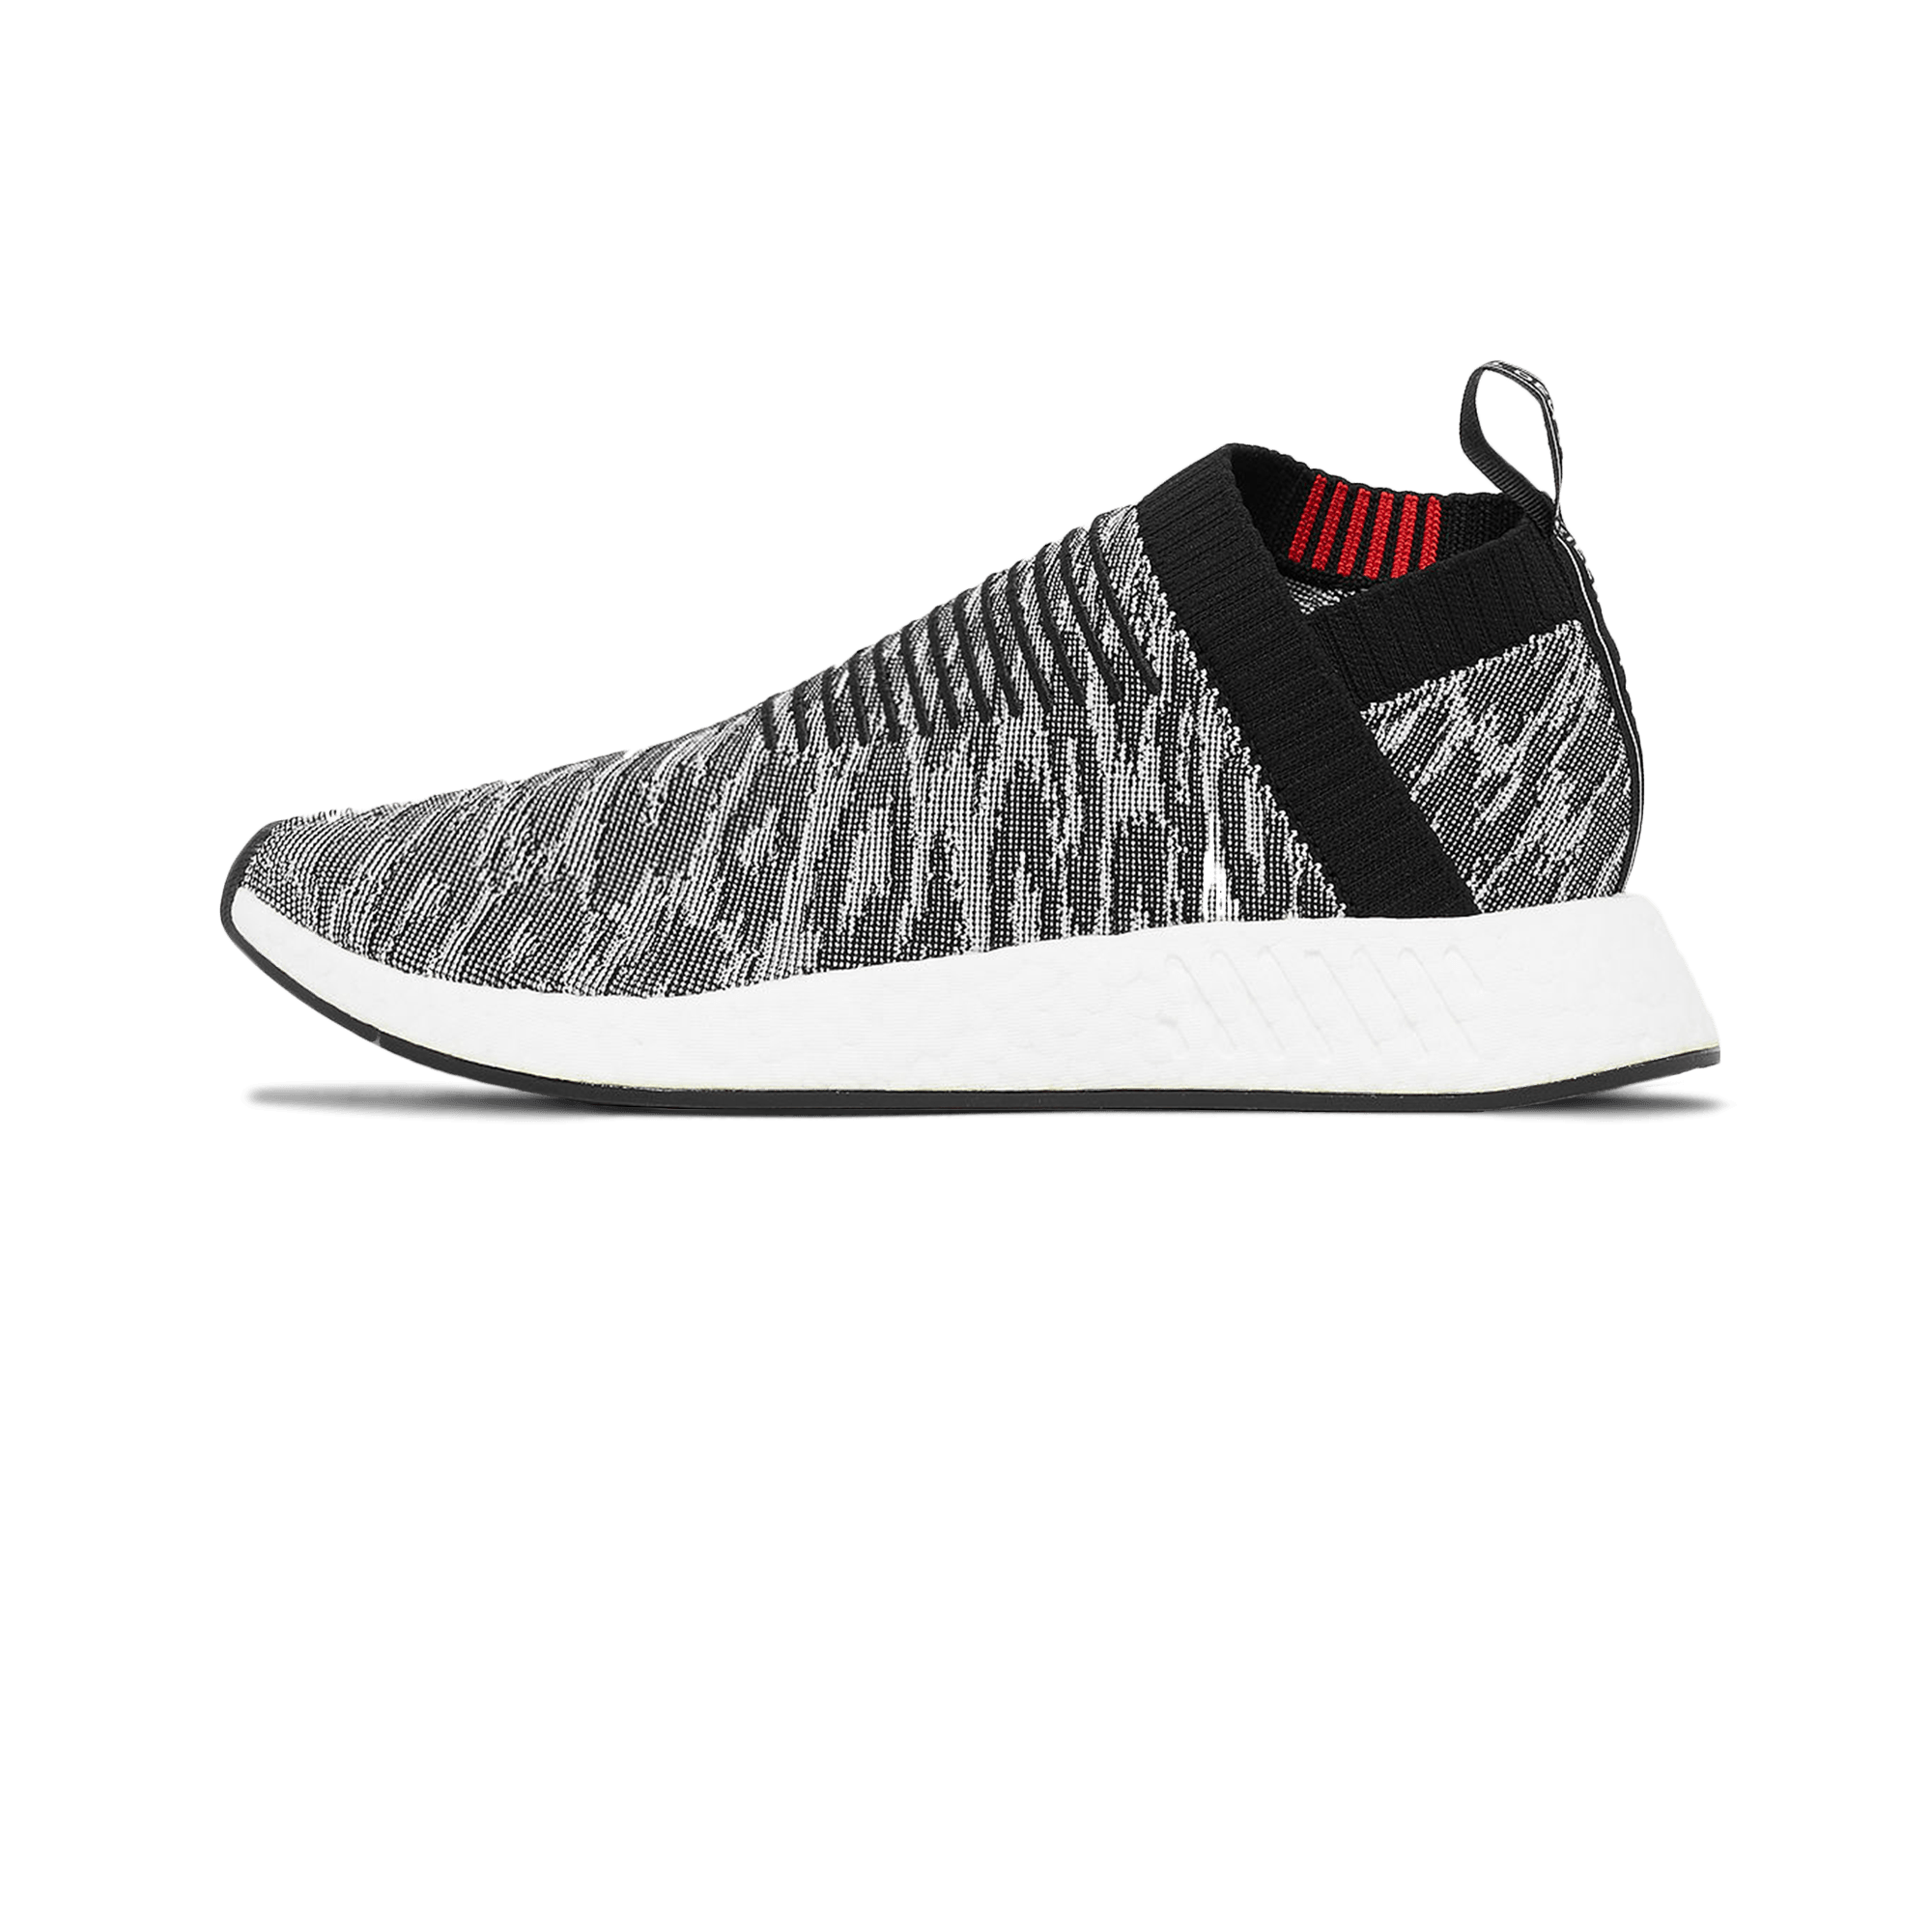 NMD_CS2 Primeknit core black/future harvest